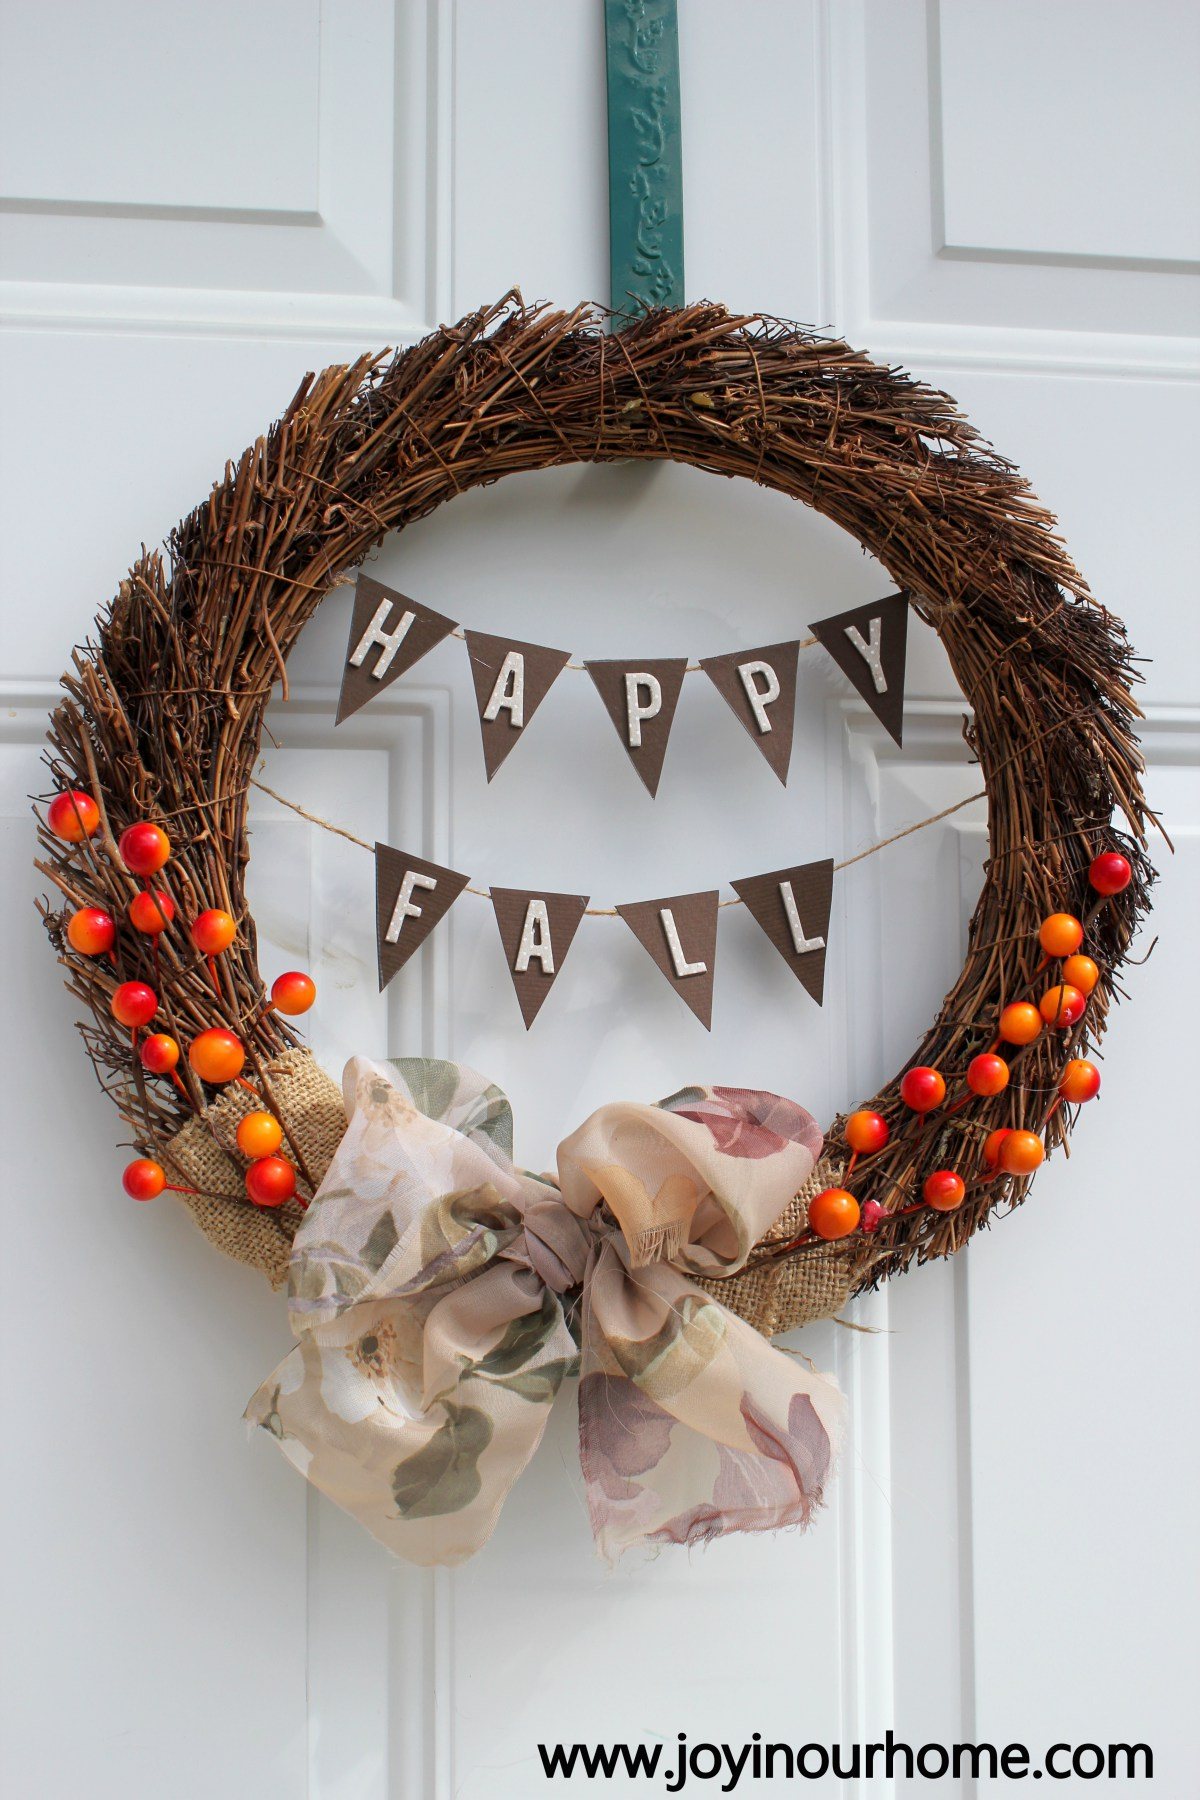 This fun autumn wreath with a happy fall banner is decorative for the season.